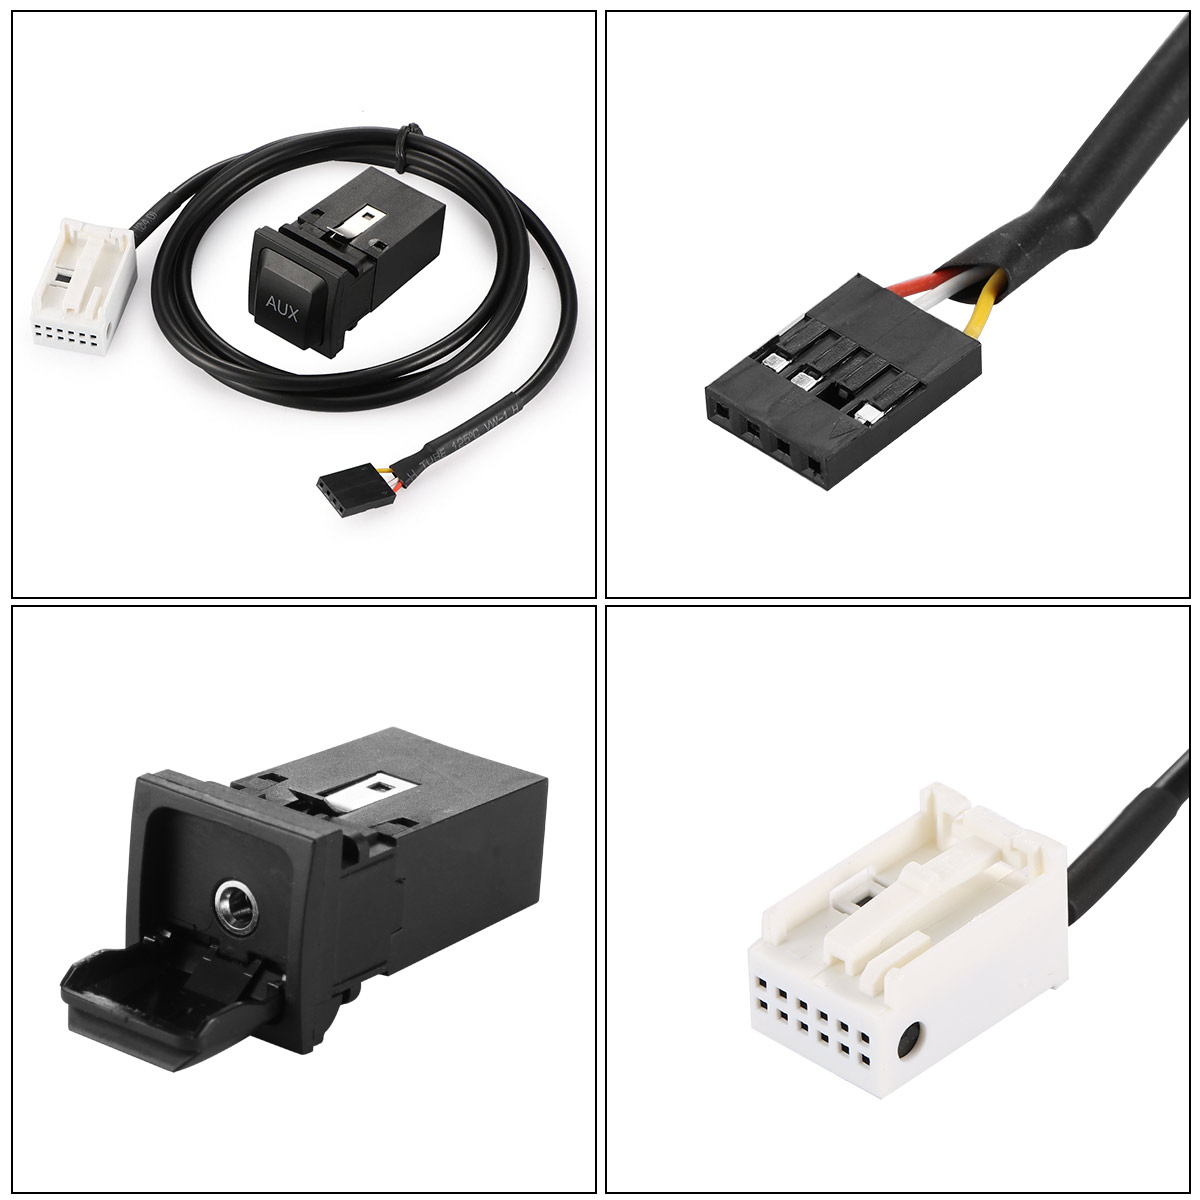 Vingtank Black USB Switch Cable AUX Cable Premium Connecting Line Wire  Harness Switch Cable For VW RNS315 RCD510 Magotan L POLO -in Cables, ...